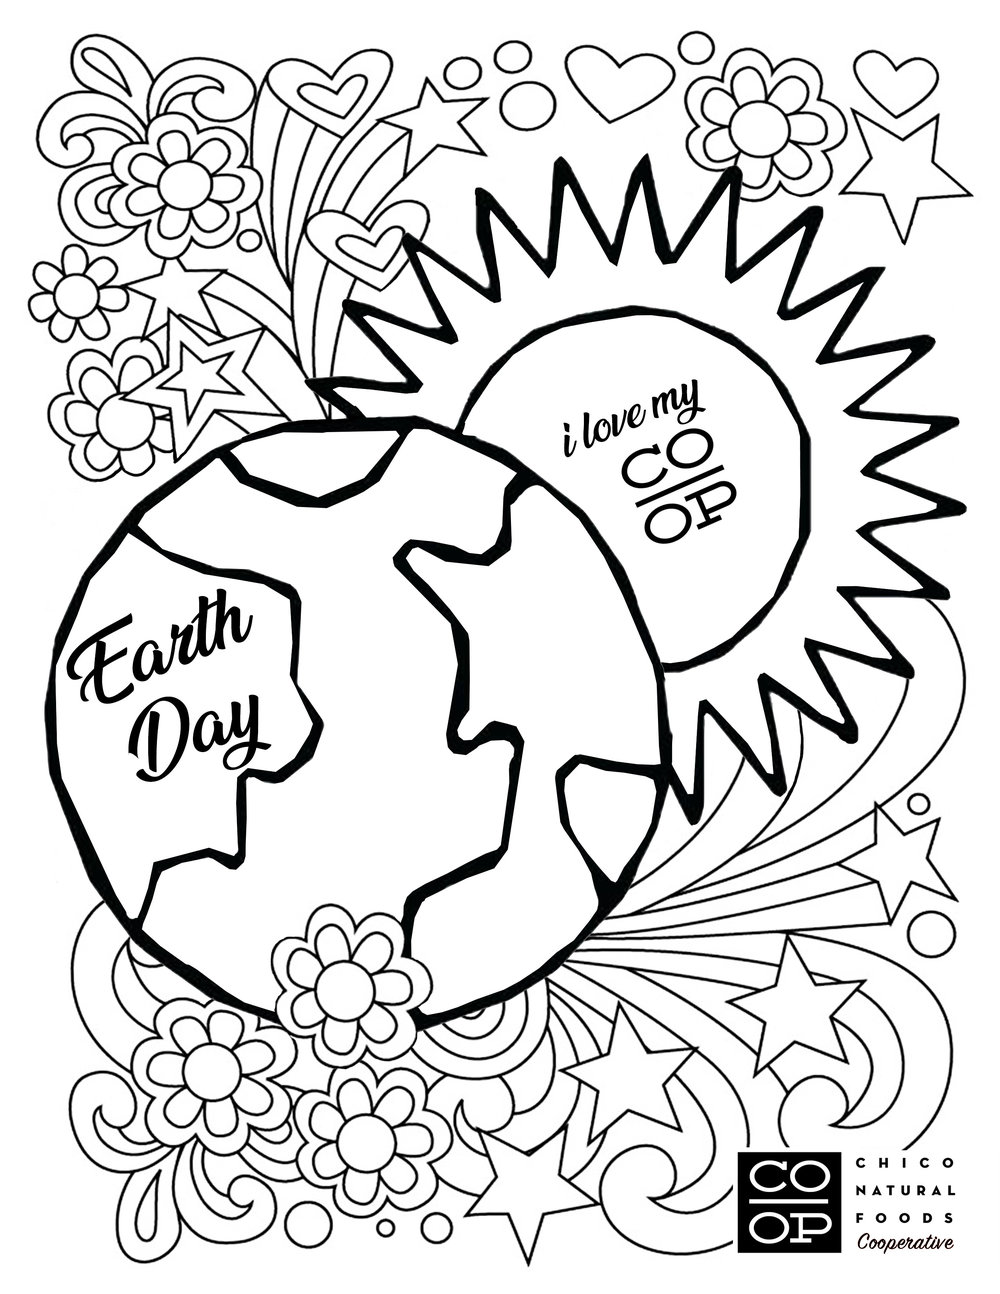 EarthDay_Coloring_Page.jpg